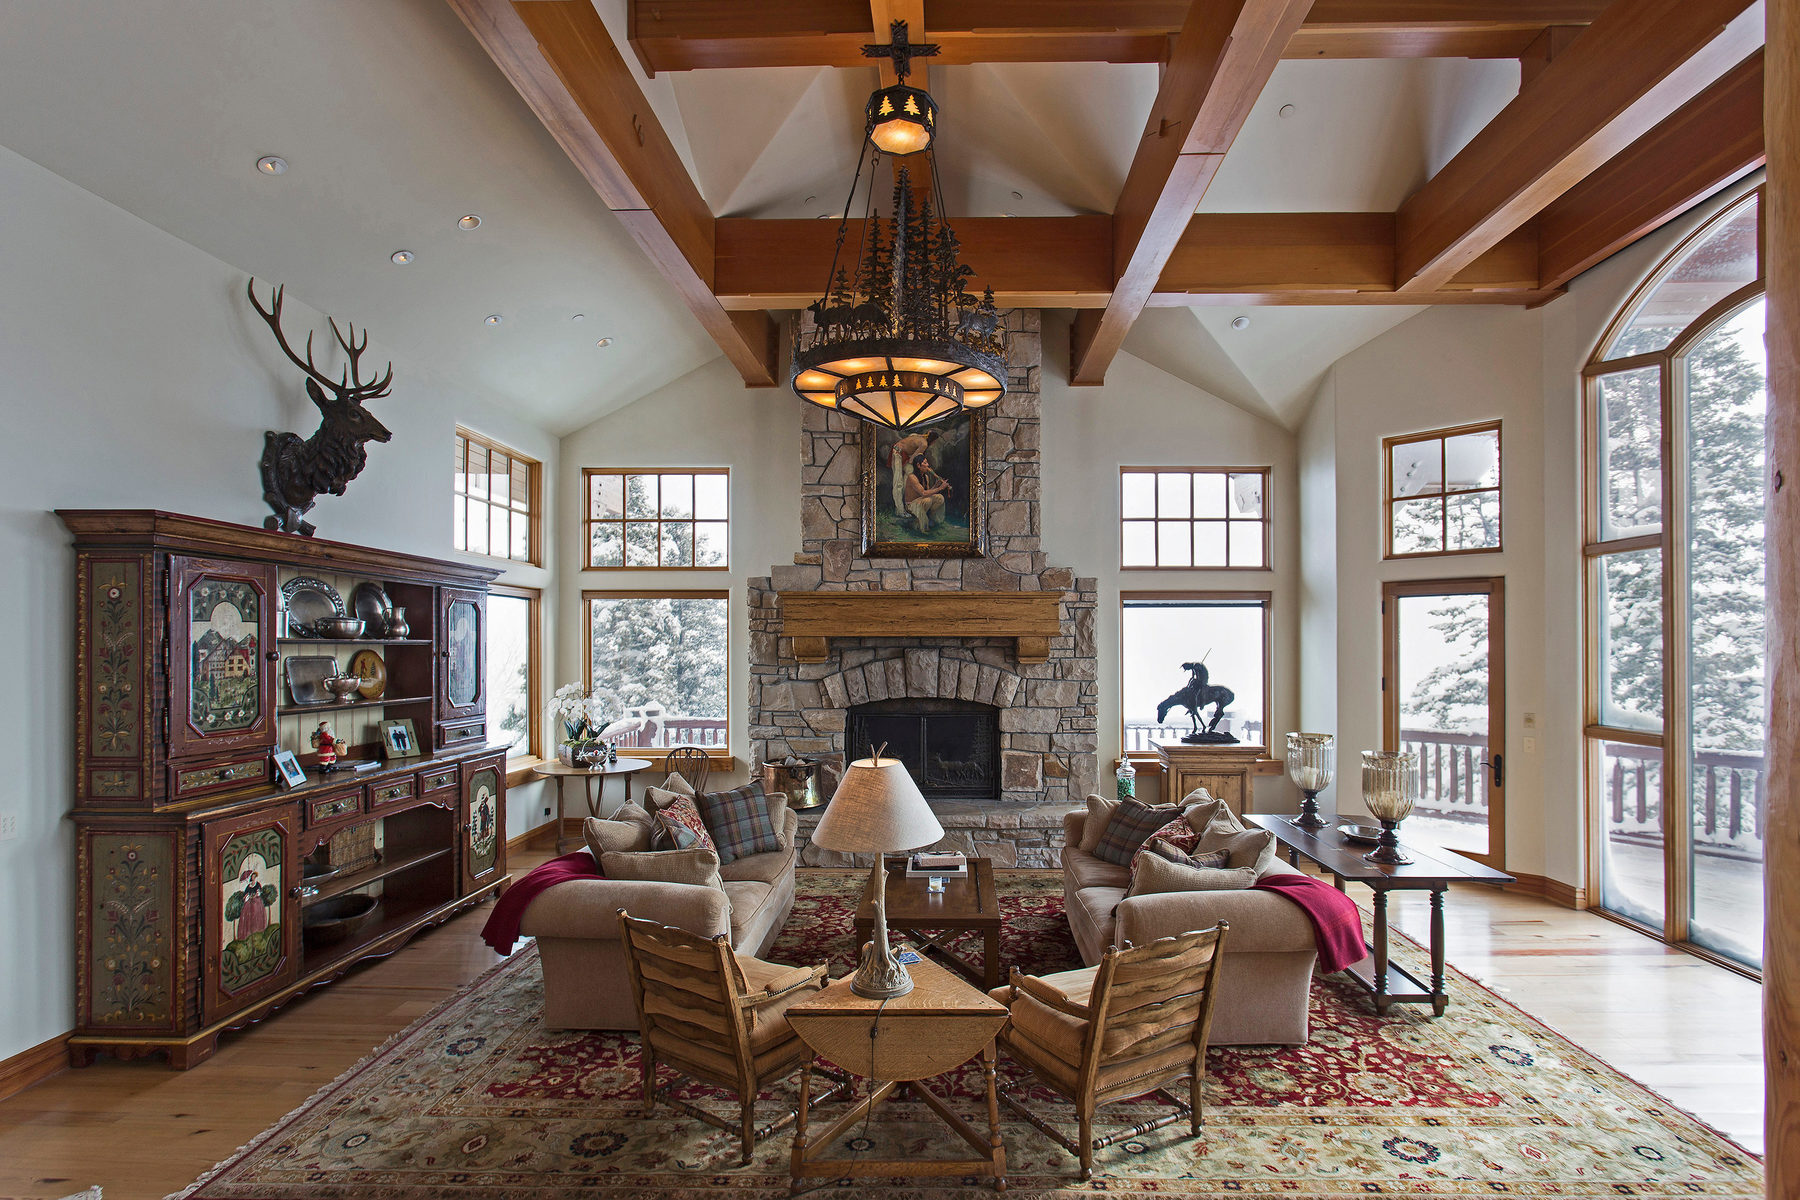 Additional photo for property listing at Privacy, Luxury, Views and Ultimate Ski access in Bald Eagle community 7948 Red Tail Ct Park City, Utah 84060 United States